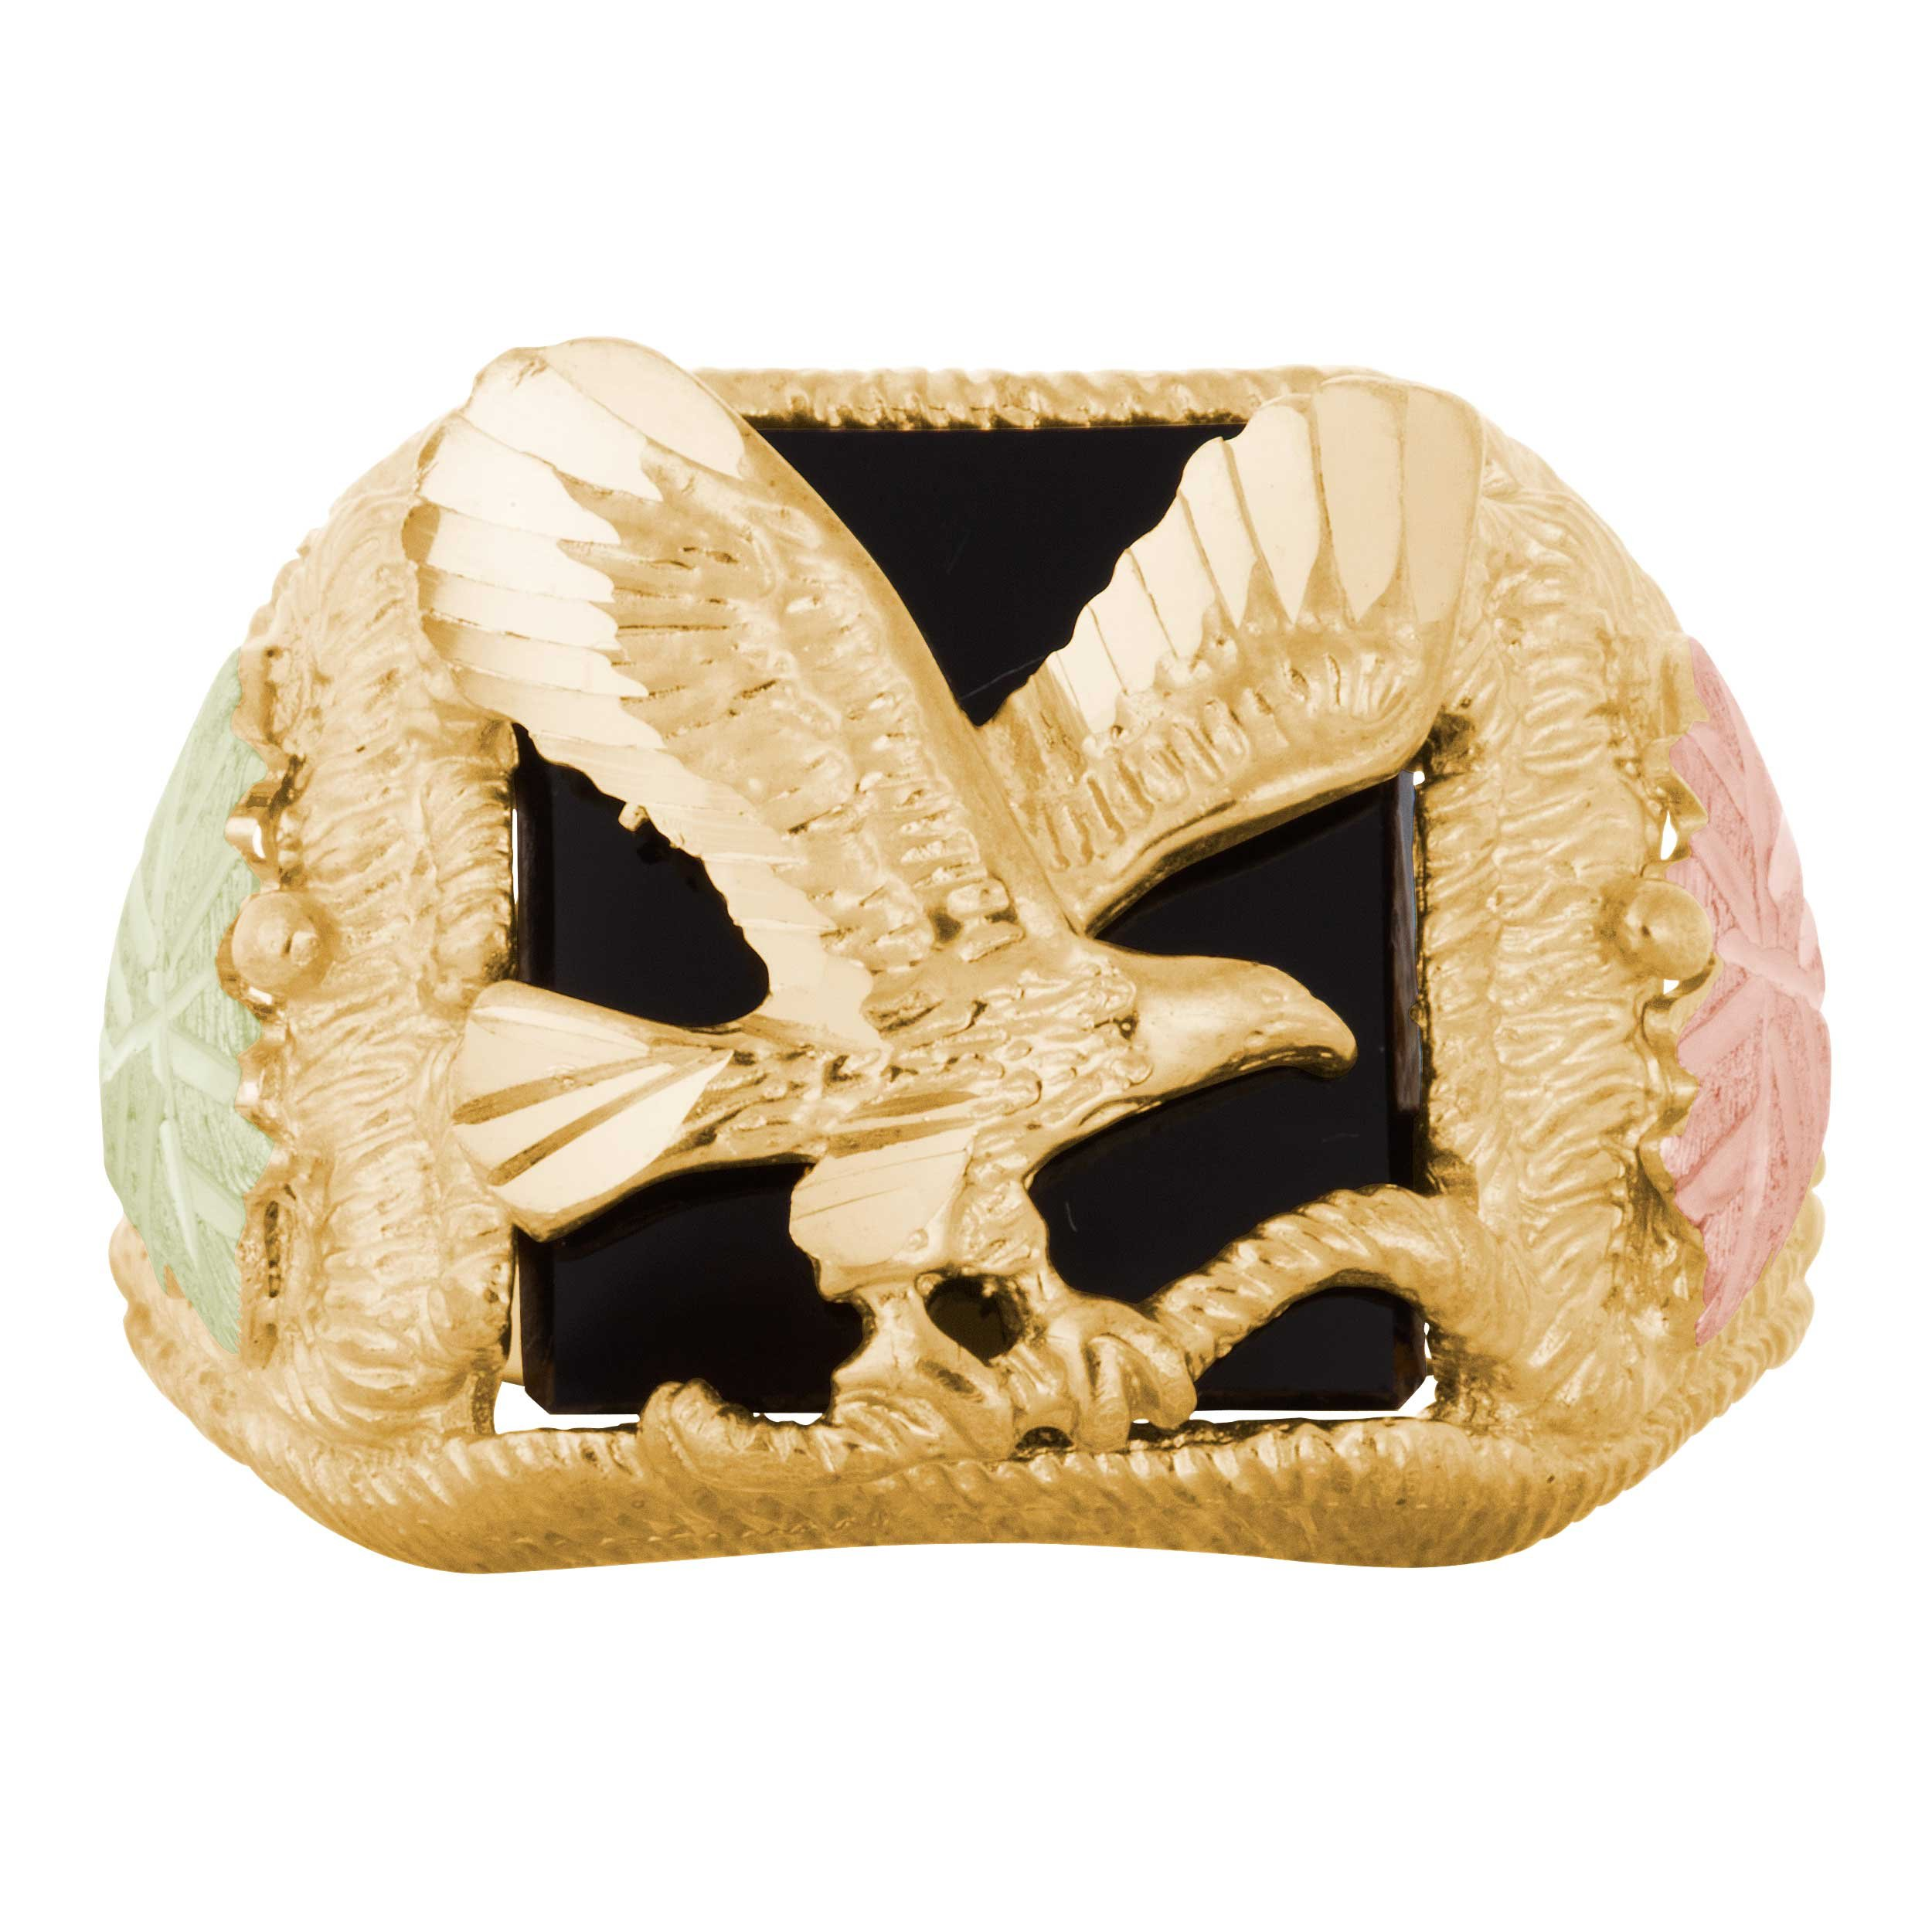 Men's Onyx Eagle Ring, 10k Yellow Gold, 12k Pink and Green Gold Black Hills Gold Motif, Size 14 by Black Hills Gold Jewelry (Image #3)